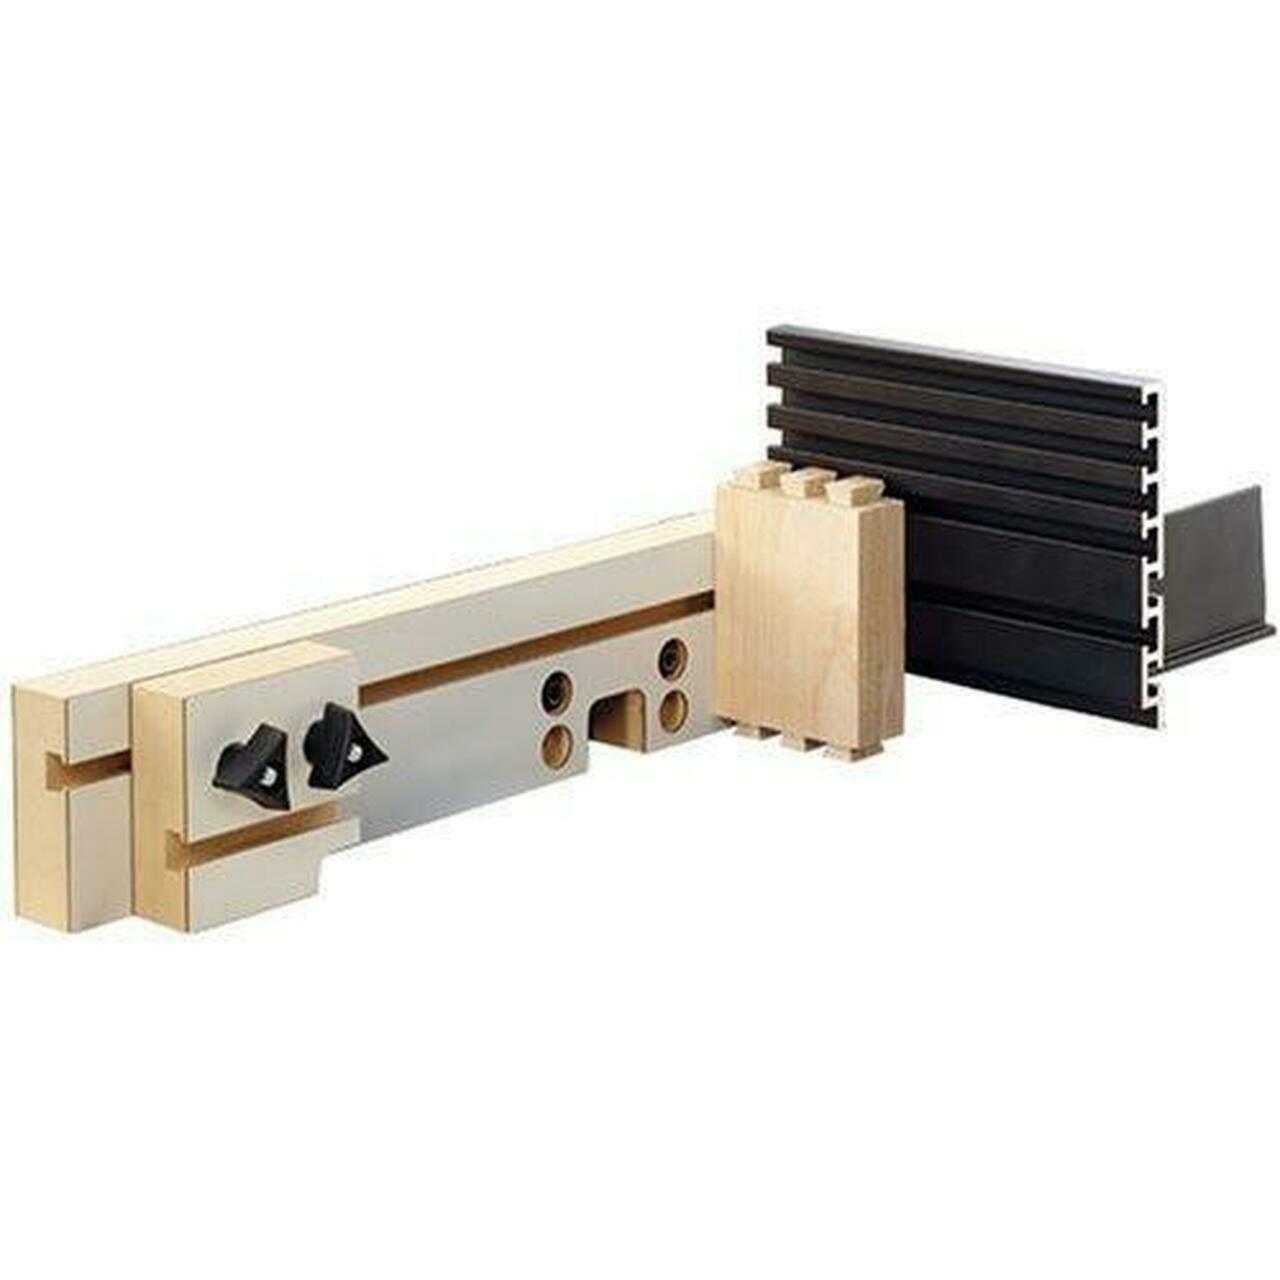 Router Positioners and Fences